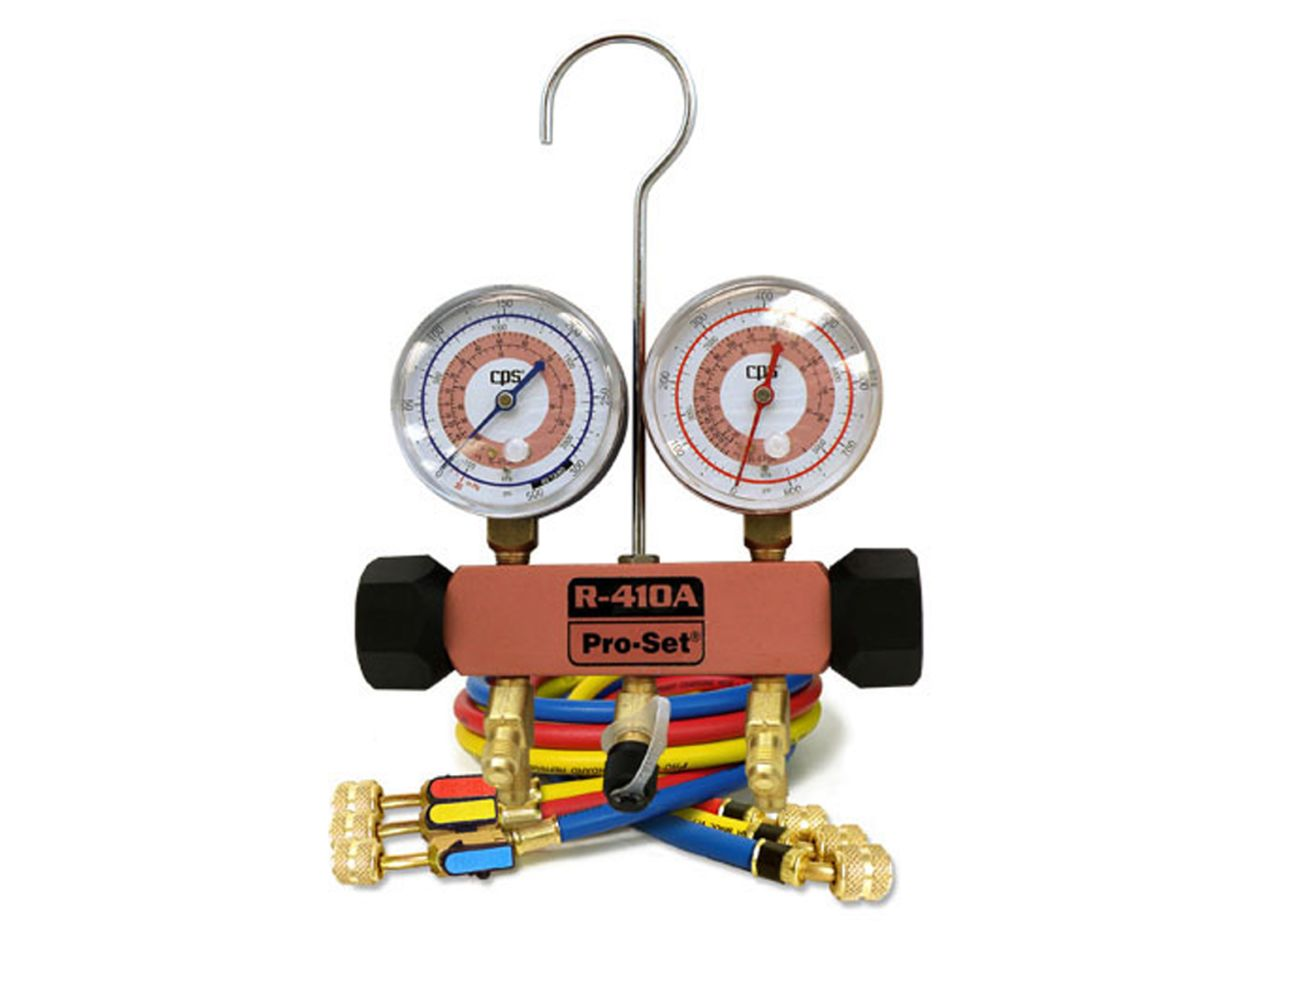 AC Manifold Gauge | Manifolds & Gauges | CPS ProductsAC